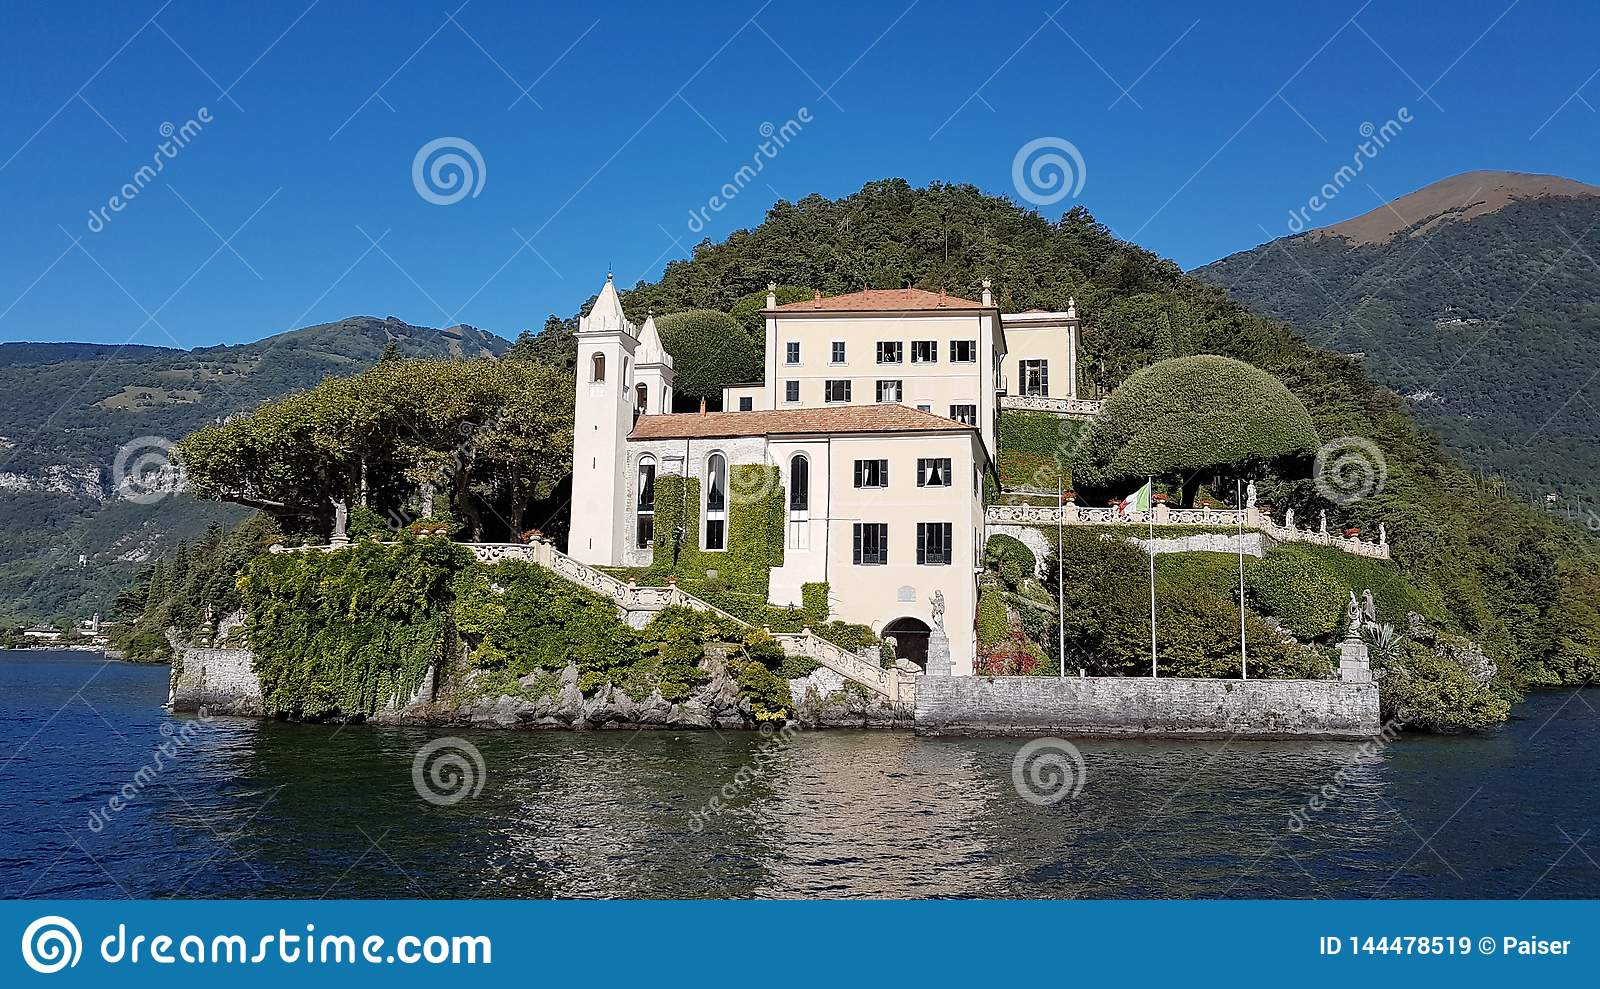 Lenno, Italy - Beautiful garden and Villa del Balbianello at Como Lake